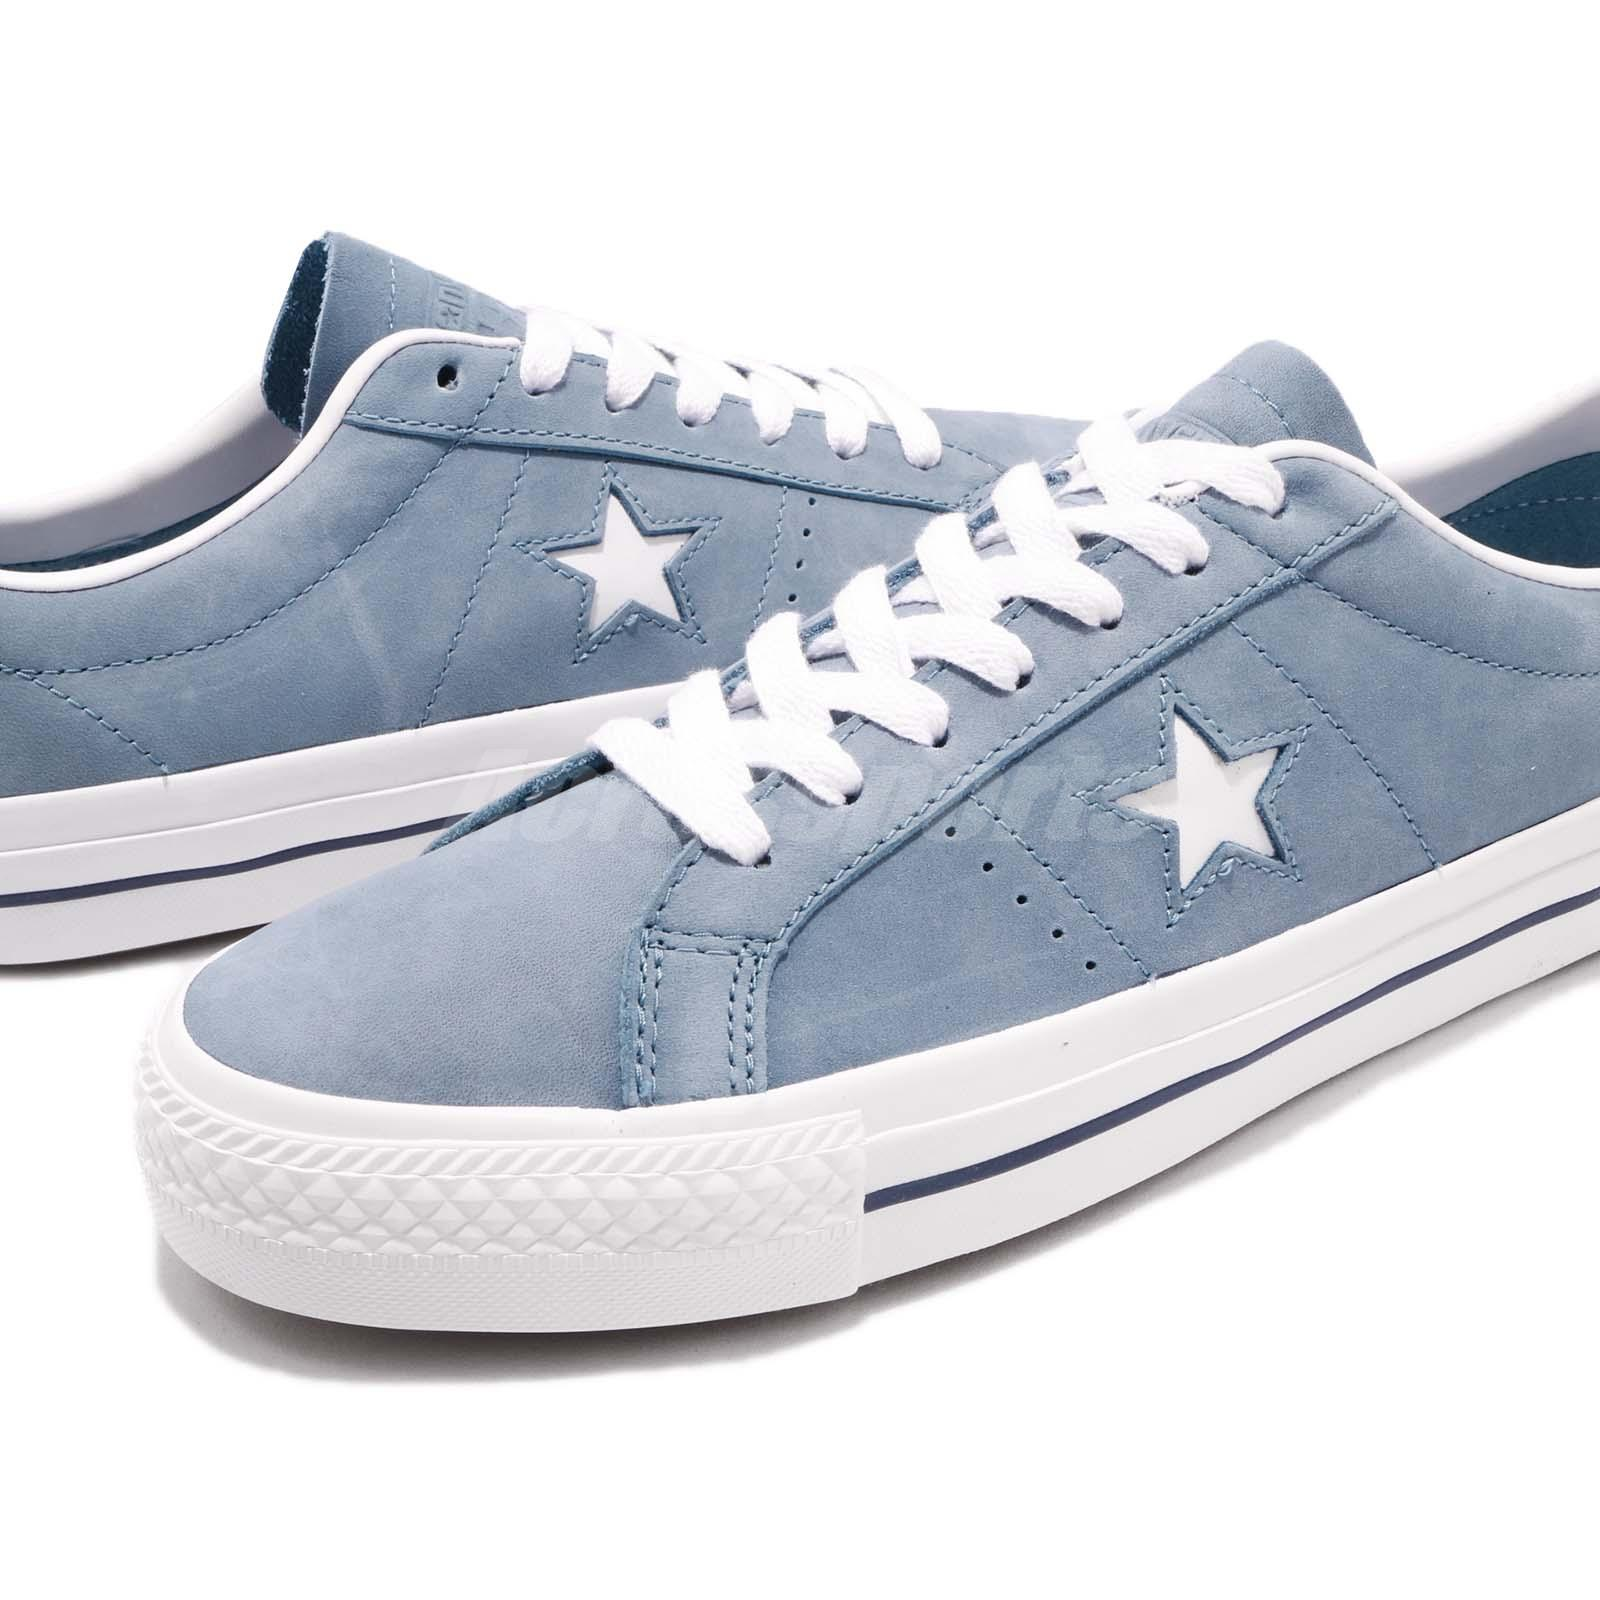 converse m9697 sneakers unisex adulto